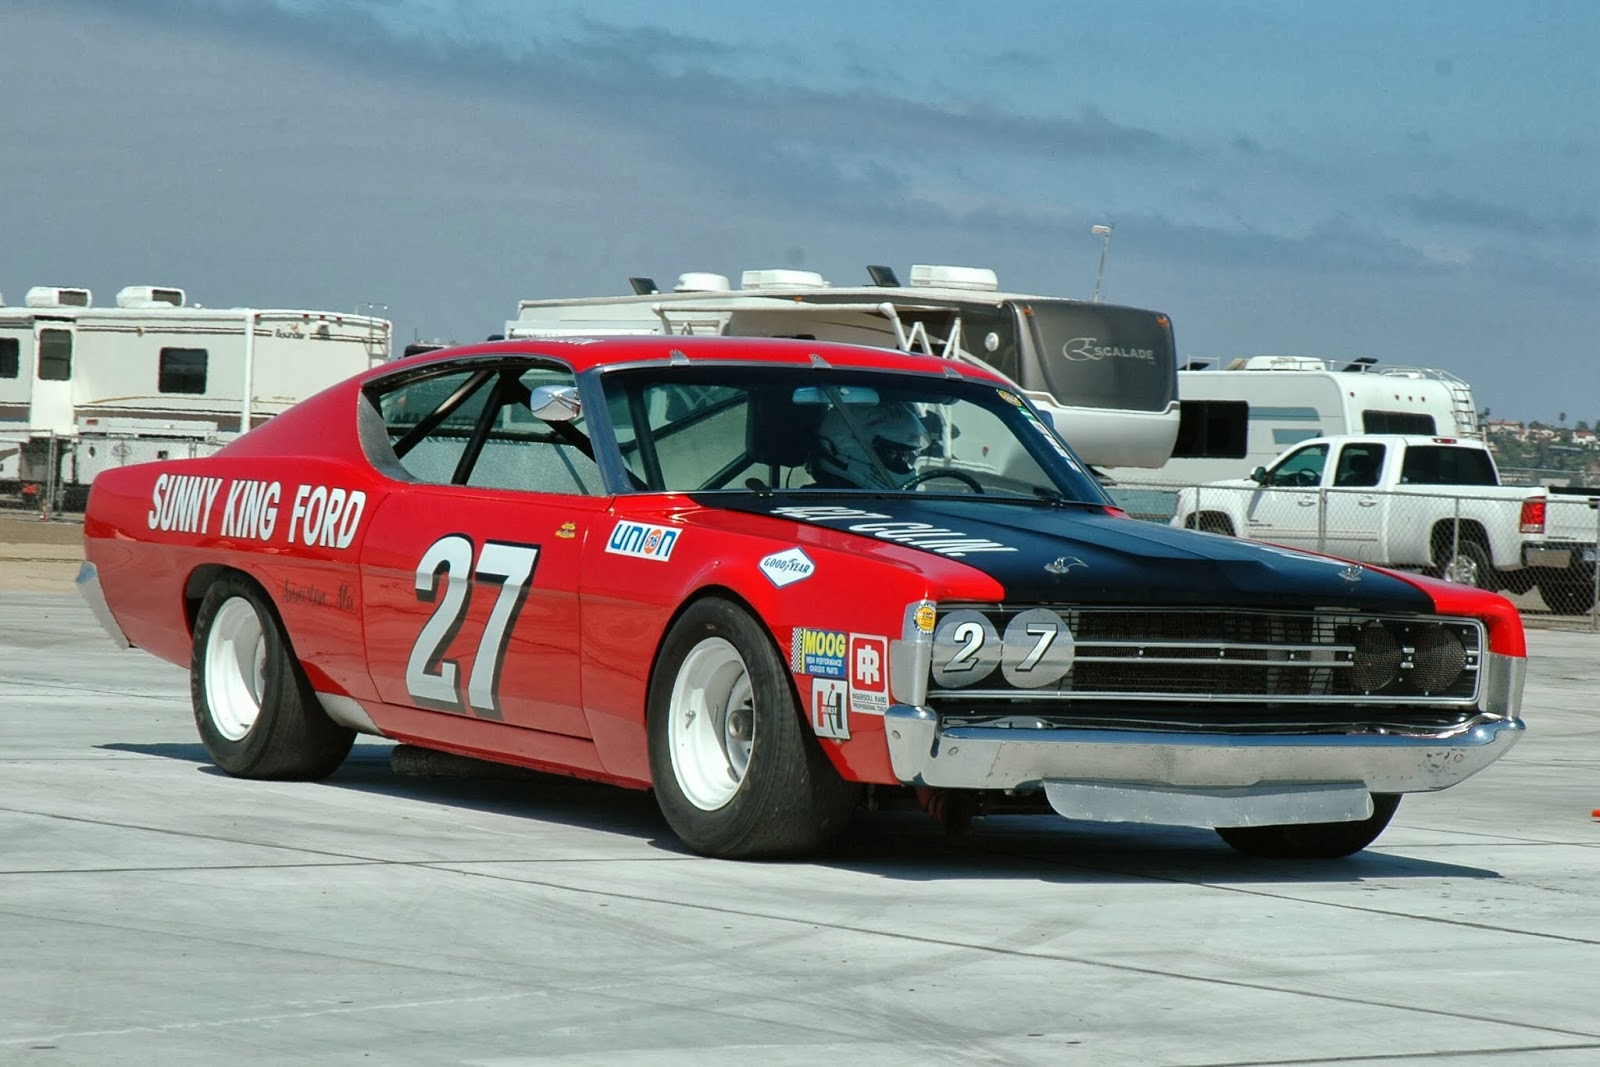 Sunny King Ford >> Hot rod rods classic muscle 1969 Ford Torino nascar race racing f wallpaper | 1600x1067 | 174407 ...